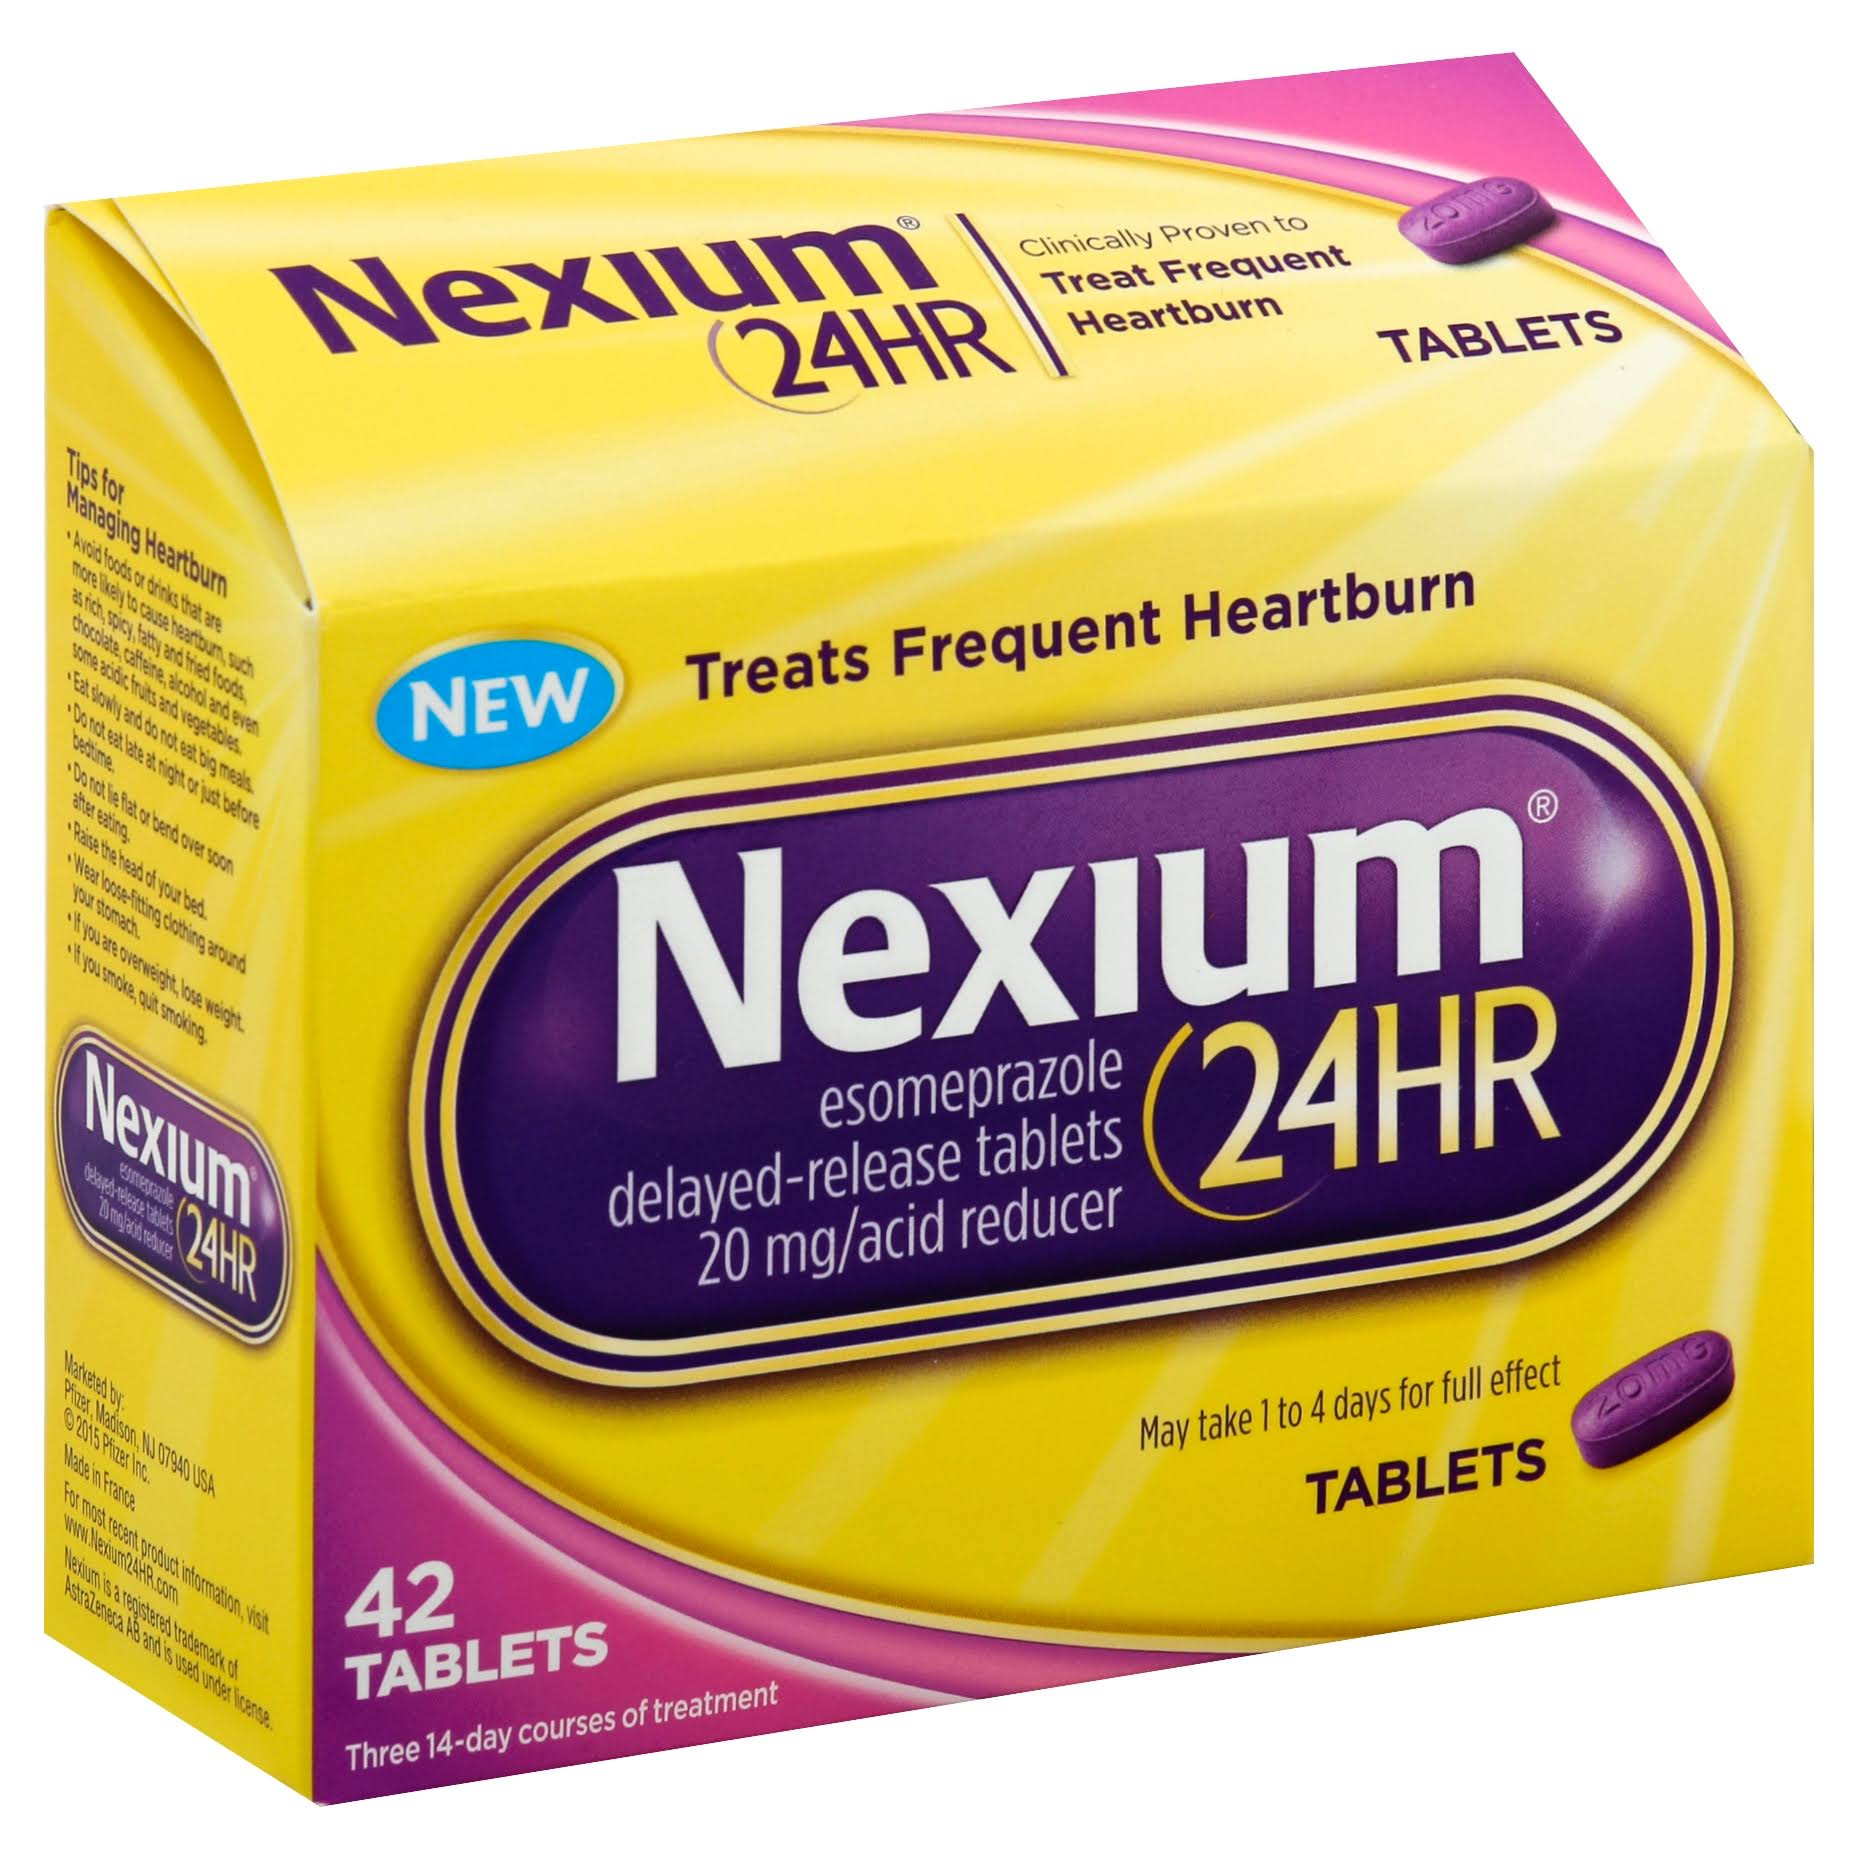 Nexium 24-Hour Esomeprazole Delayed Release Heartburn Relief - 42 Tablets